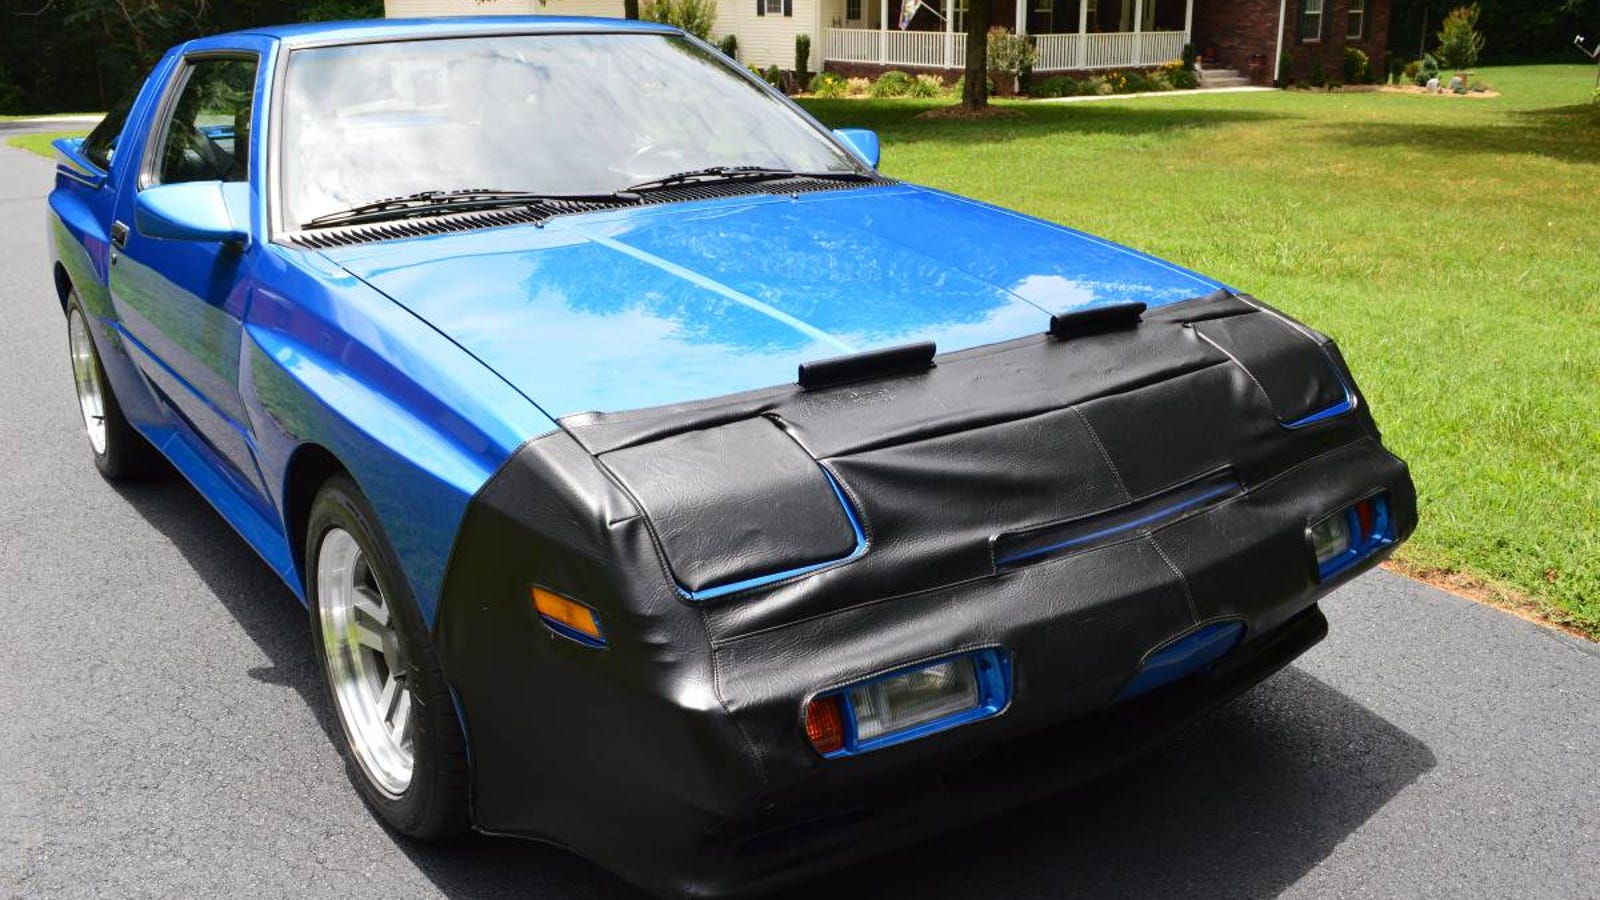 At $10,777, Is This 1989 Chrysler Conquest TSi a Captive